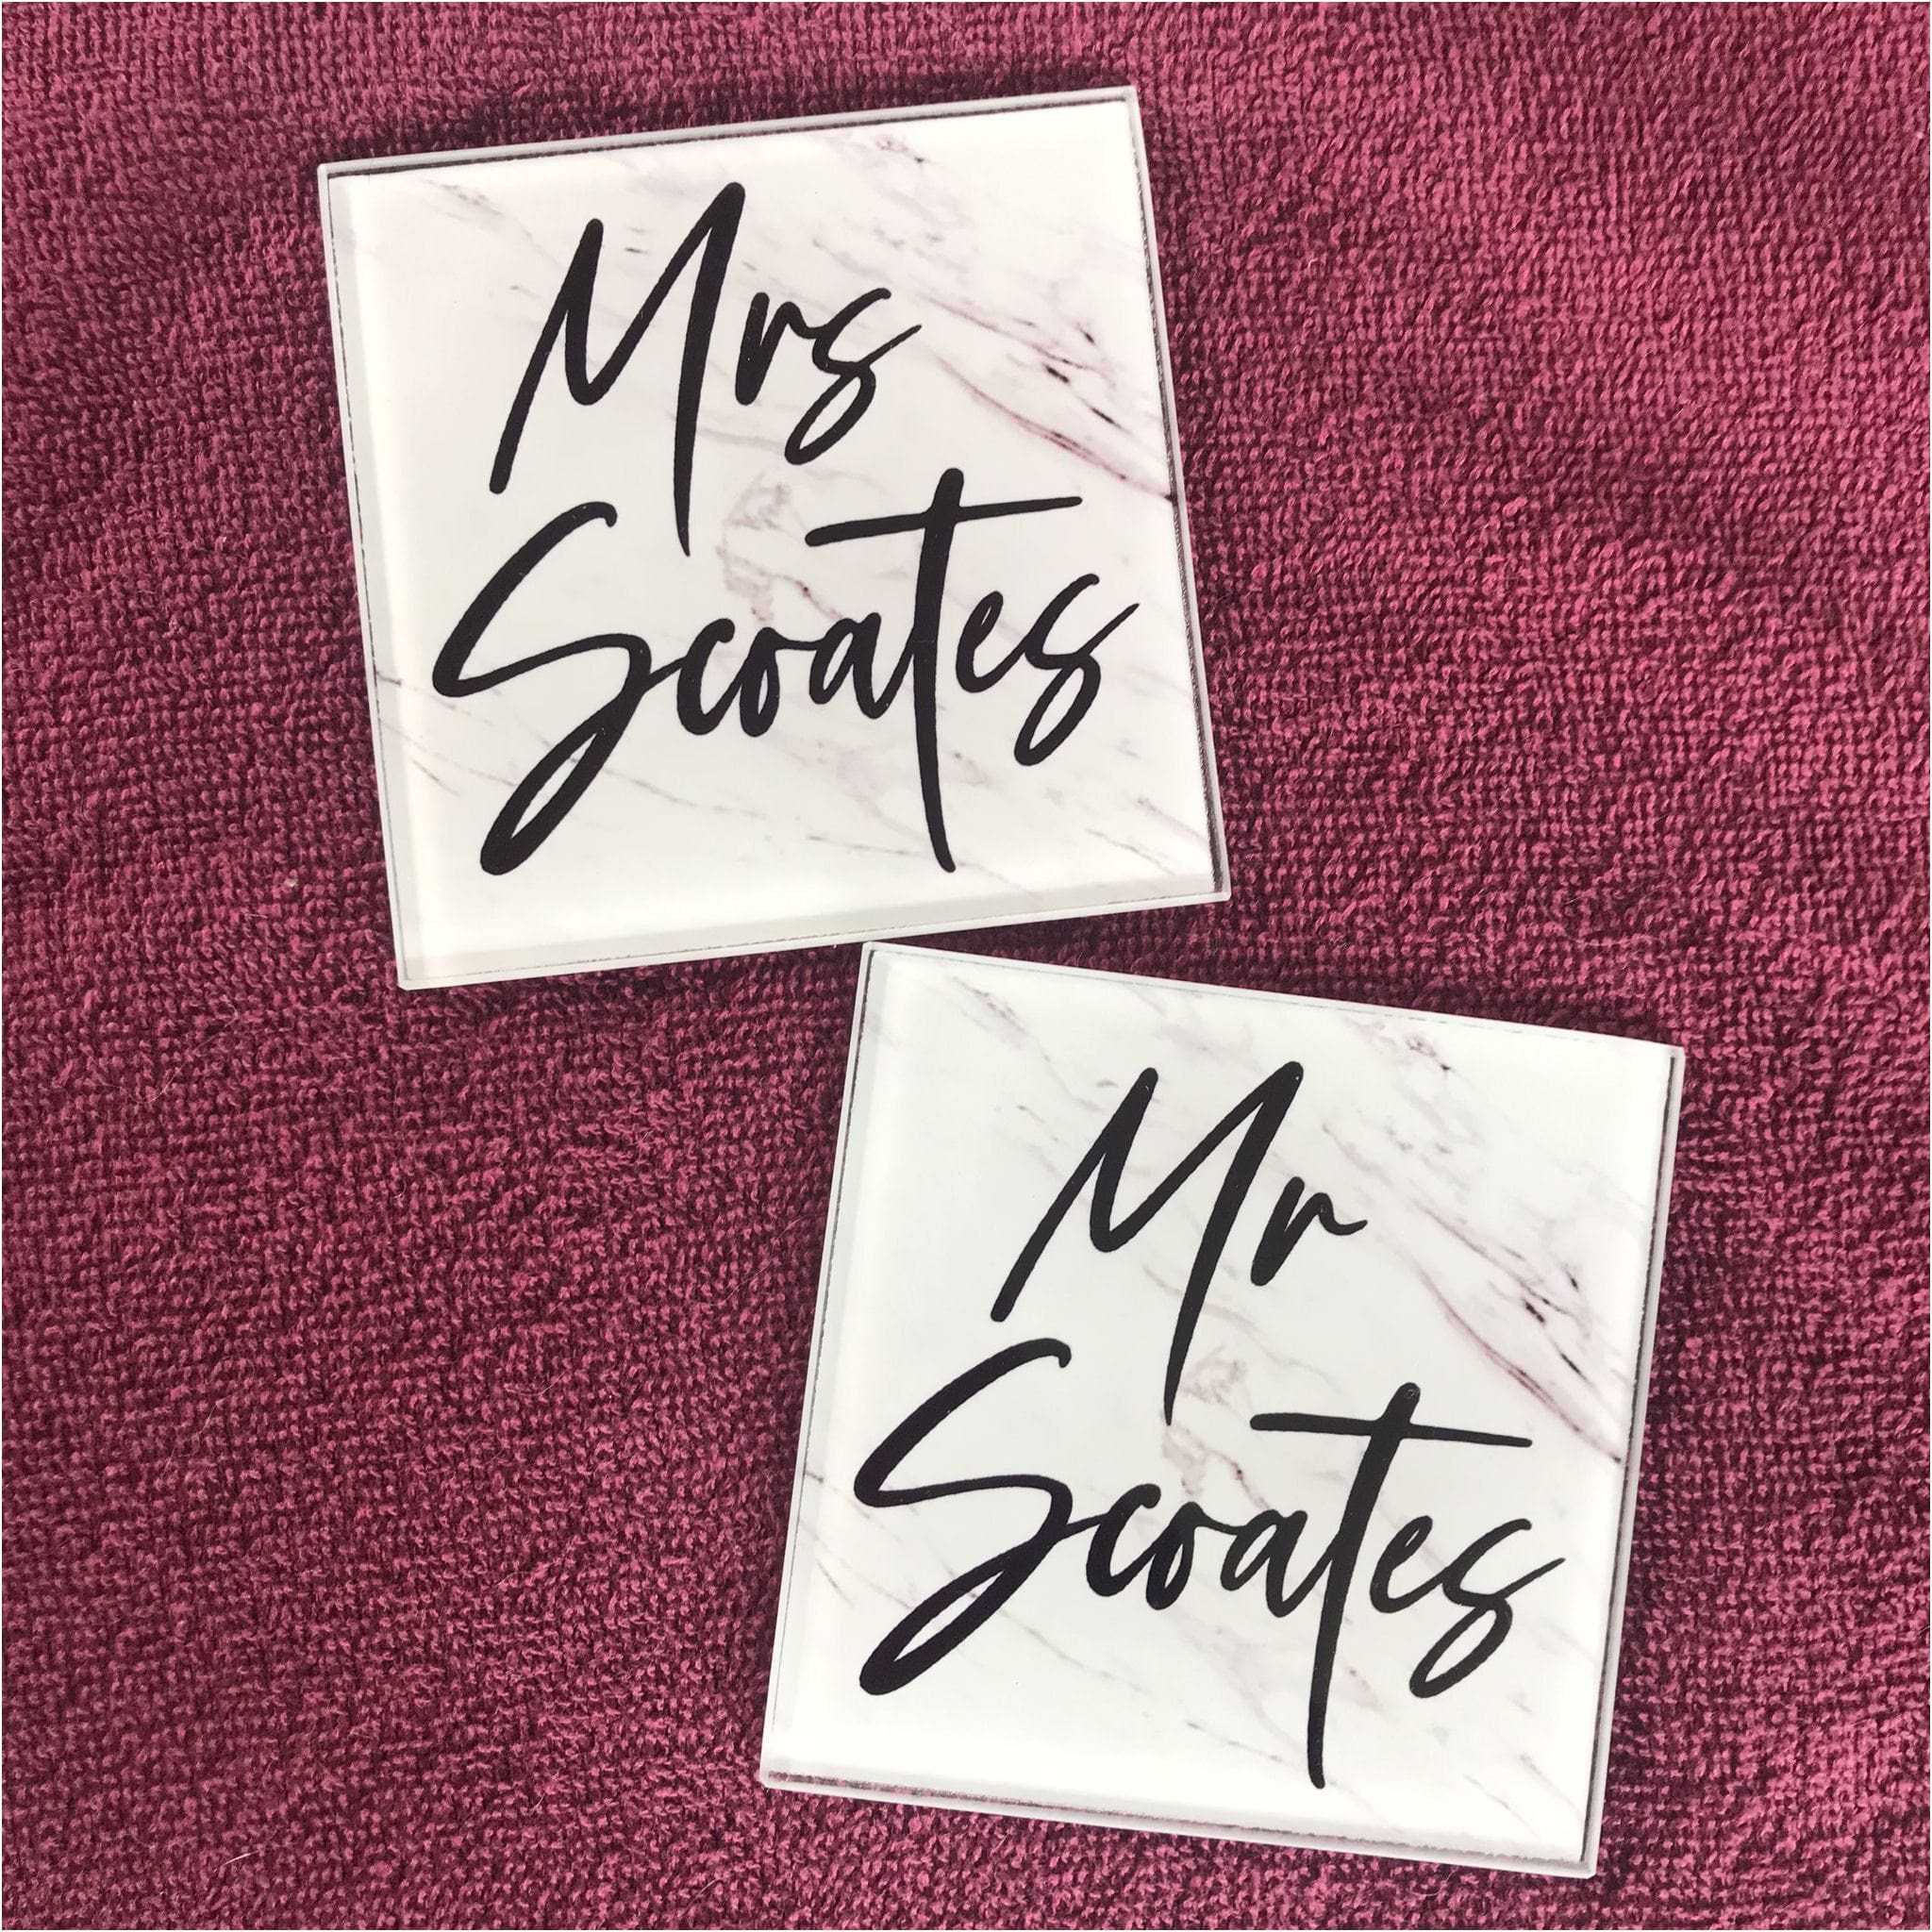 Marble Effect Mr & Mrs Glass Coasters - Coaster